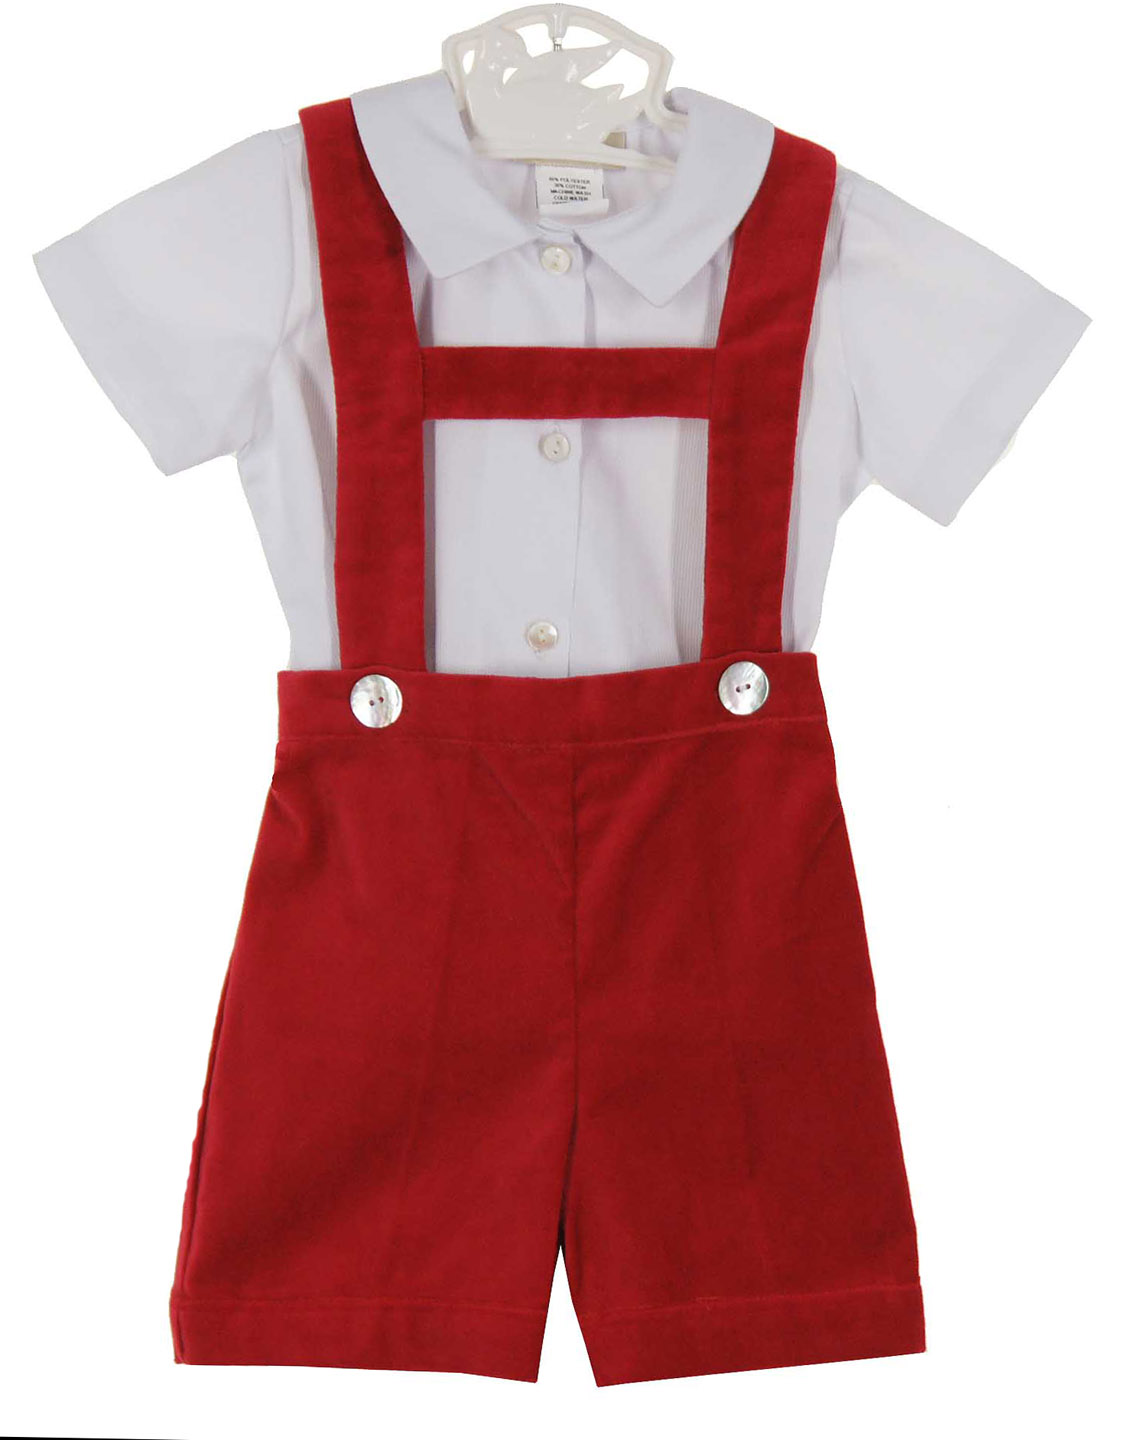 Marco & Lizzy red velvet suspendered shorts set,baby boys red ...